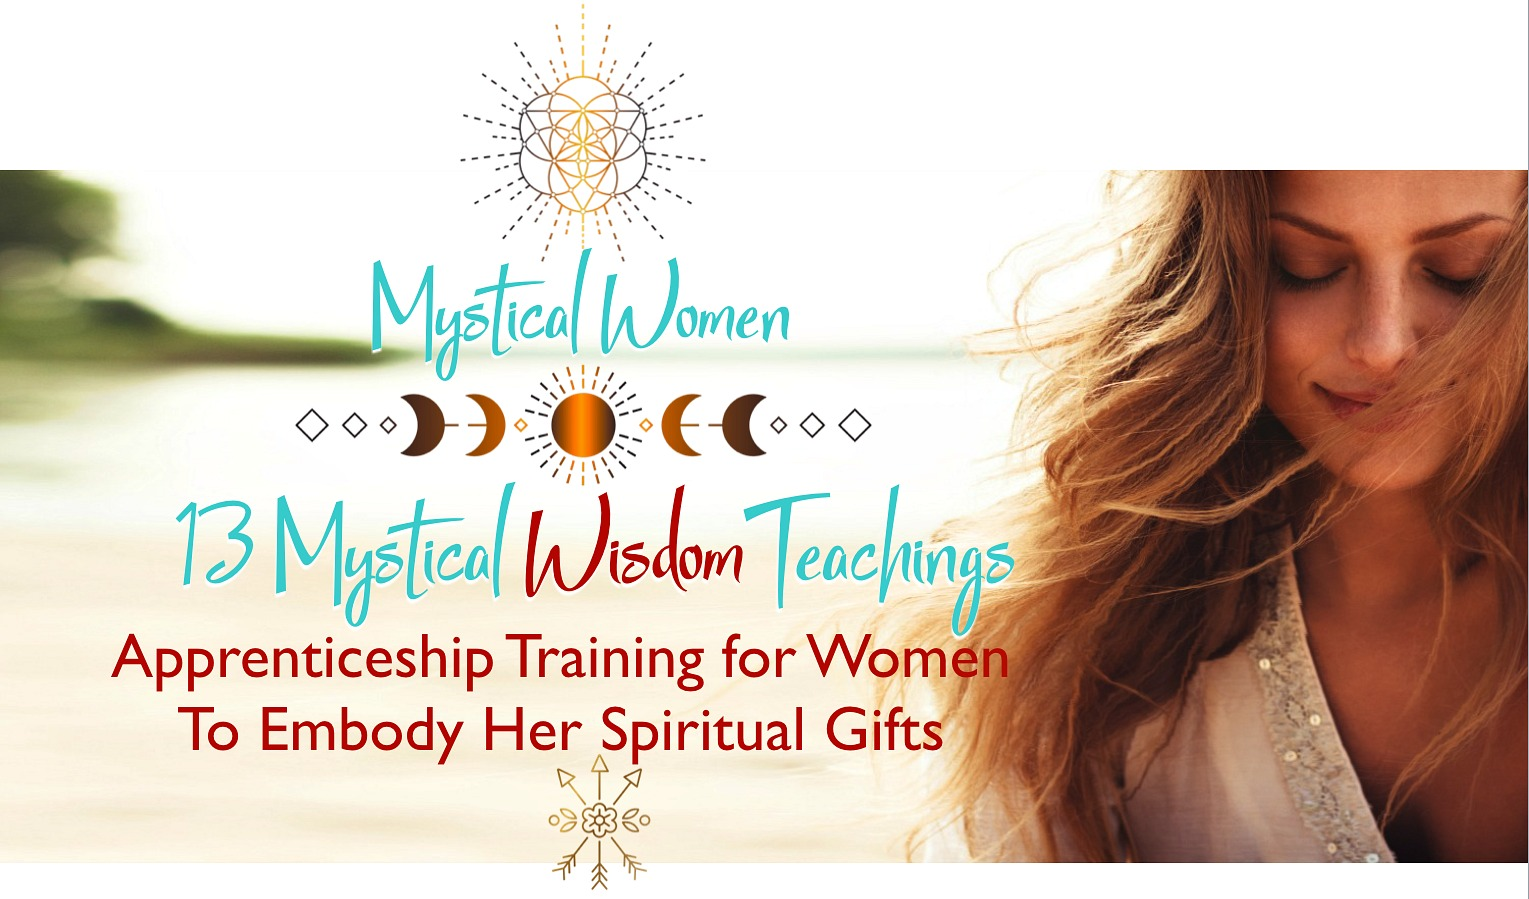 13 Wisdom Teachings Vanessa Benlolo header.jpg